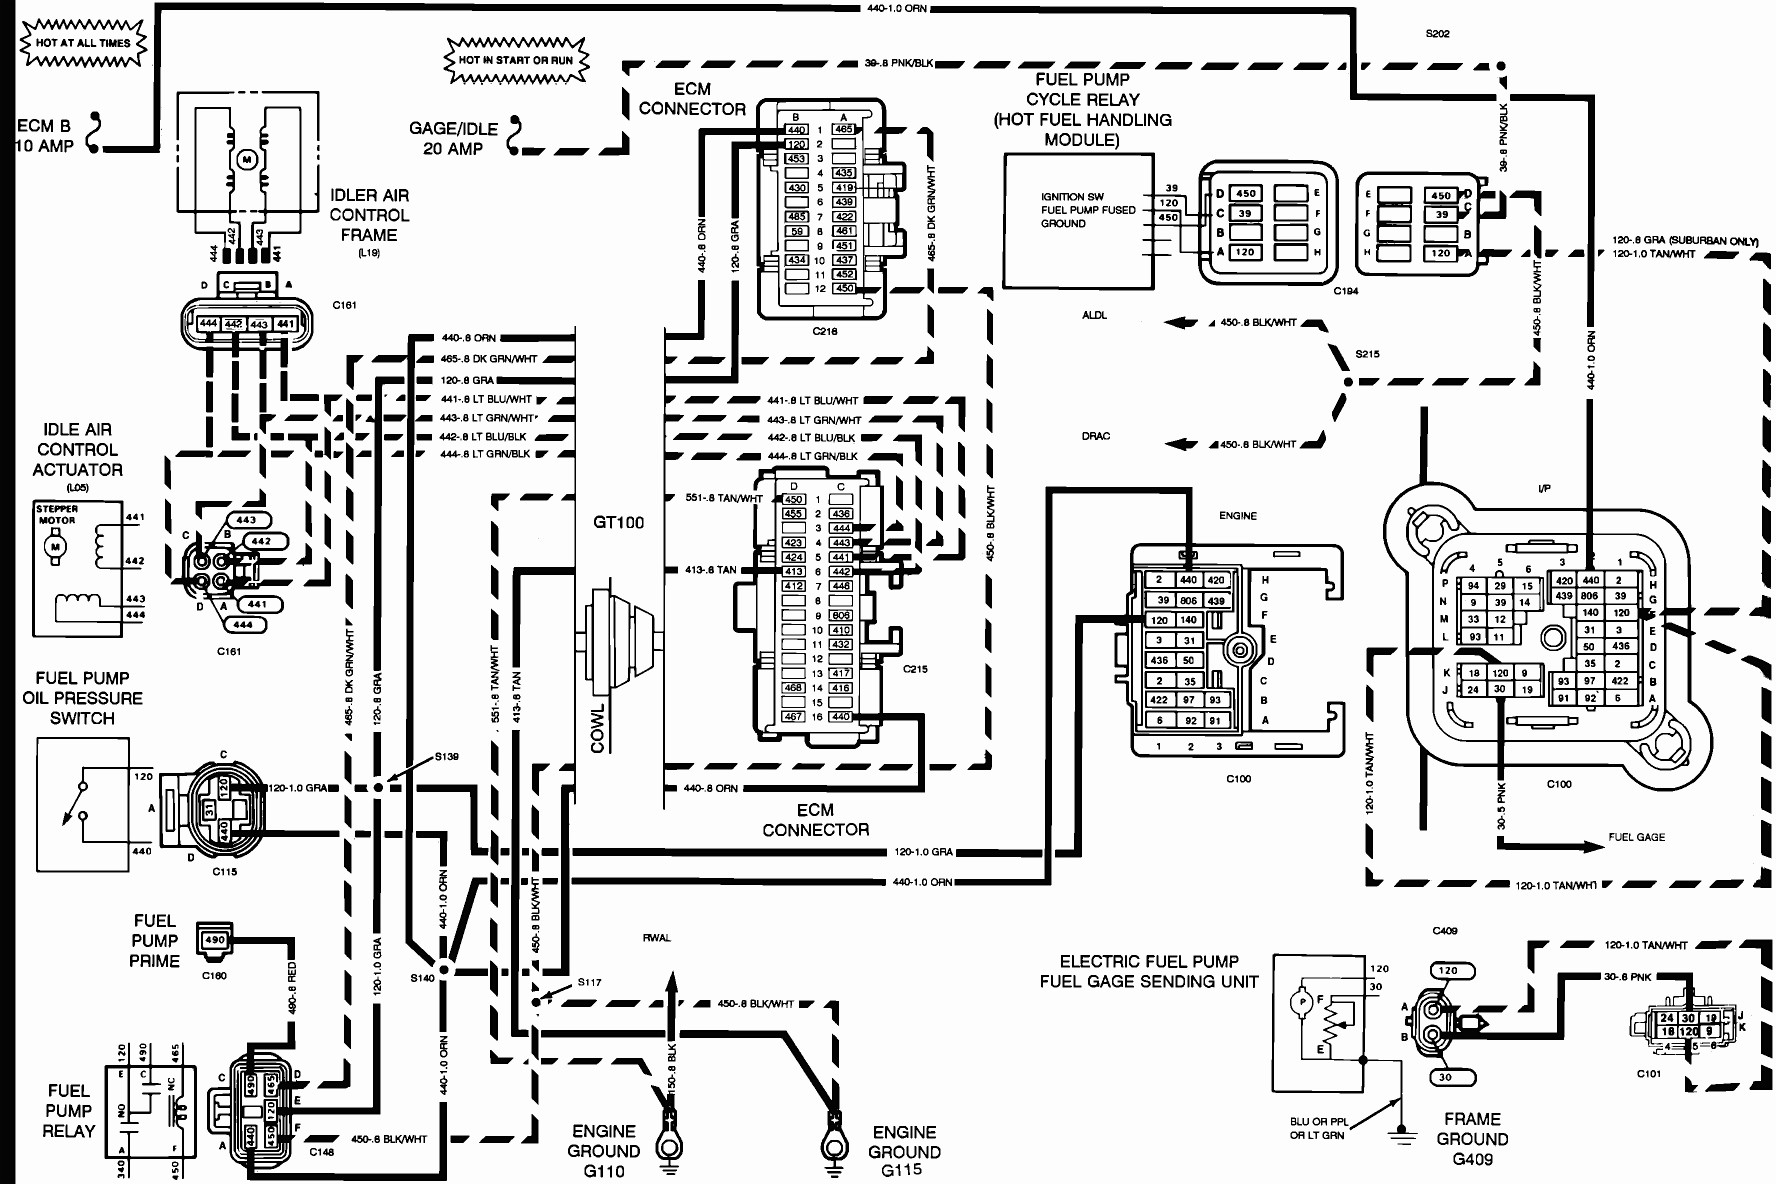 Fleetwood Rv Electrical Schematic. wiring diagram 1997